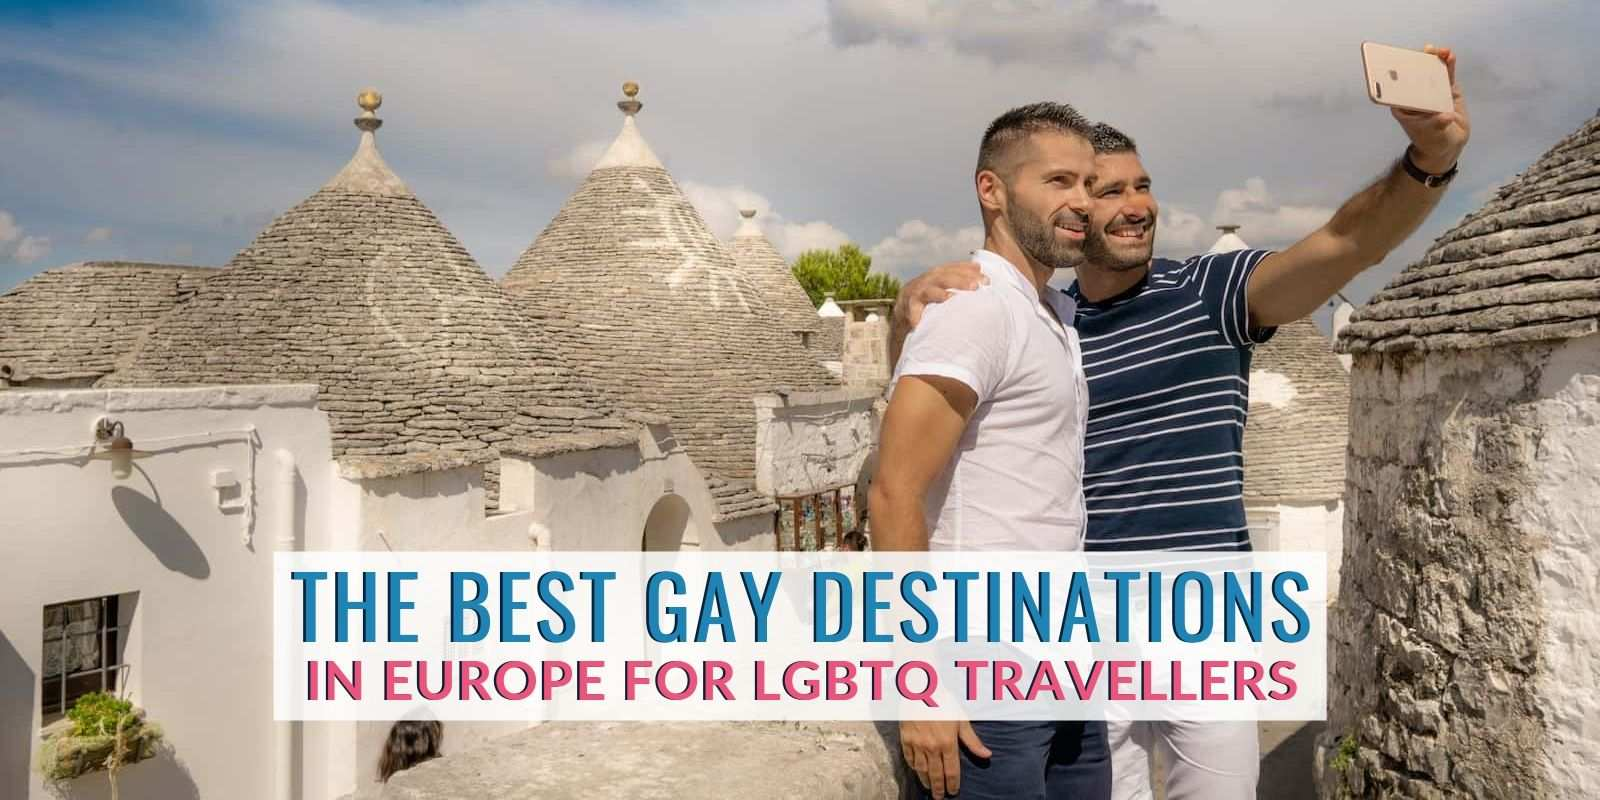 Find out the best places in Europe for gay travellers in our guide